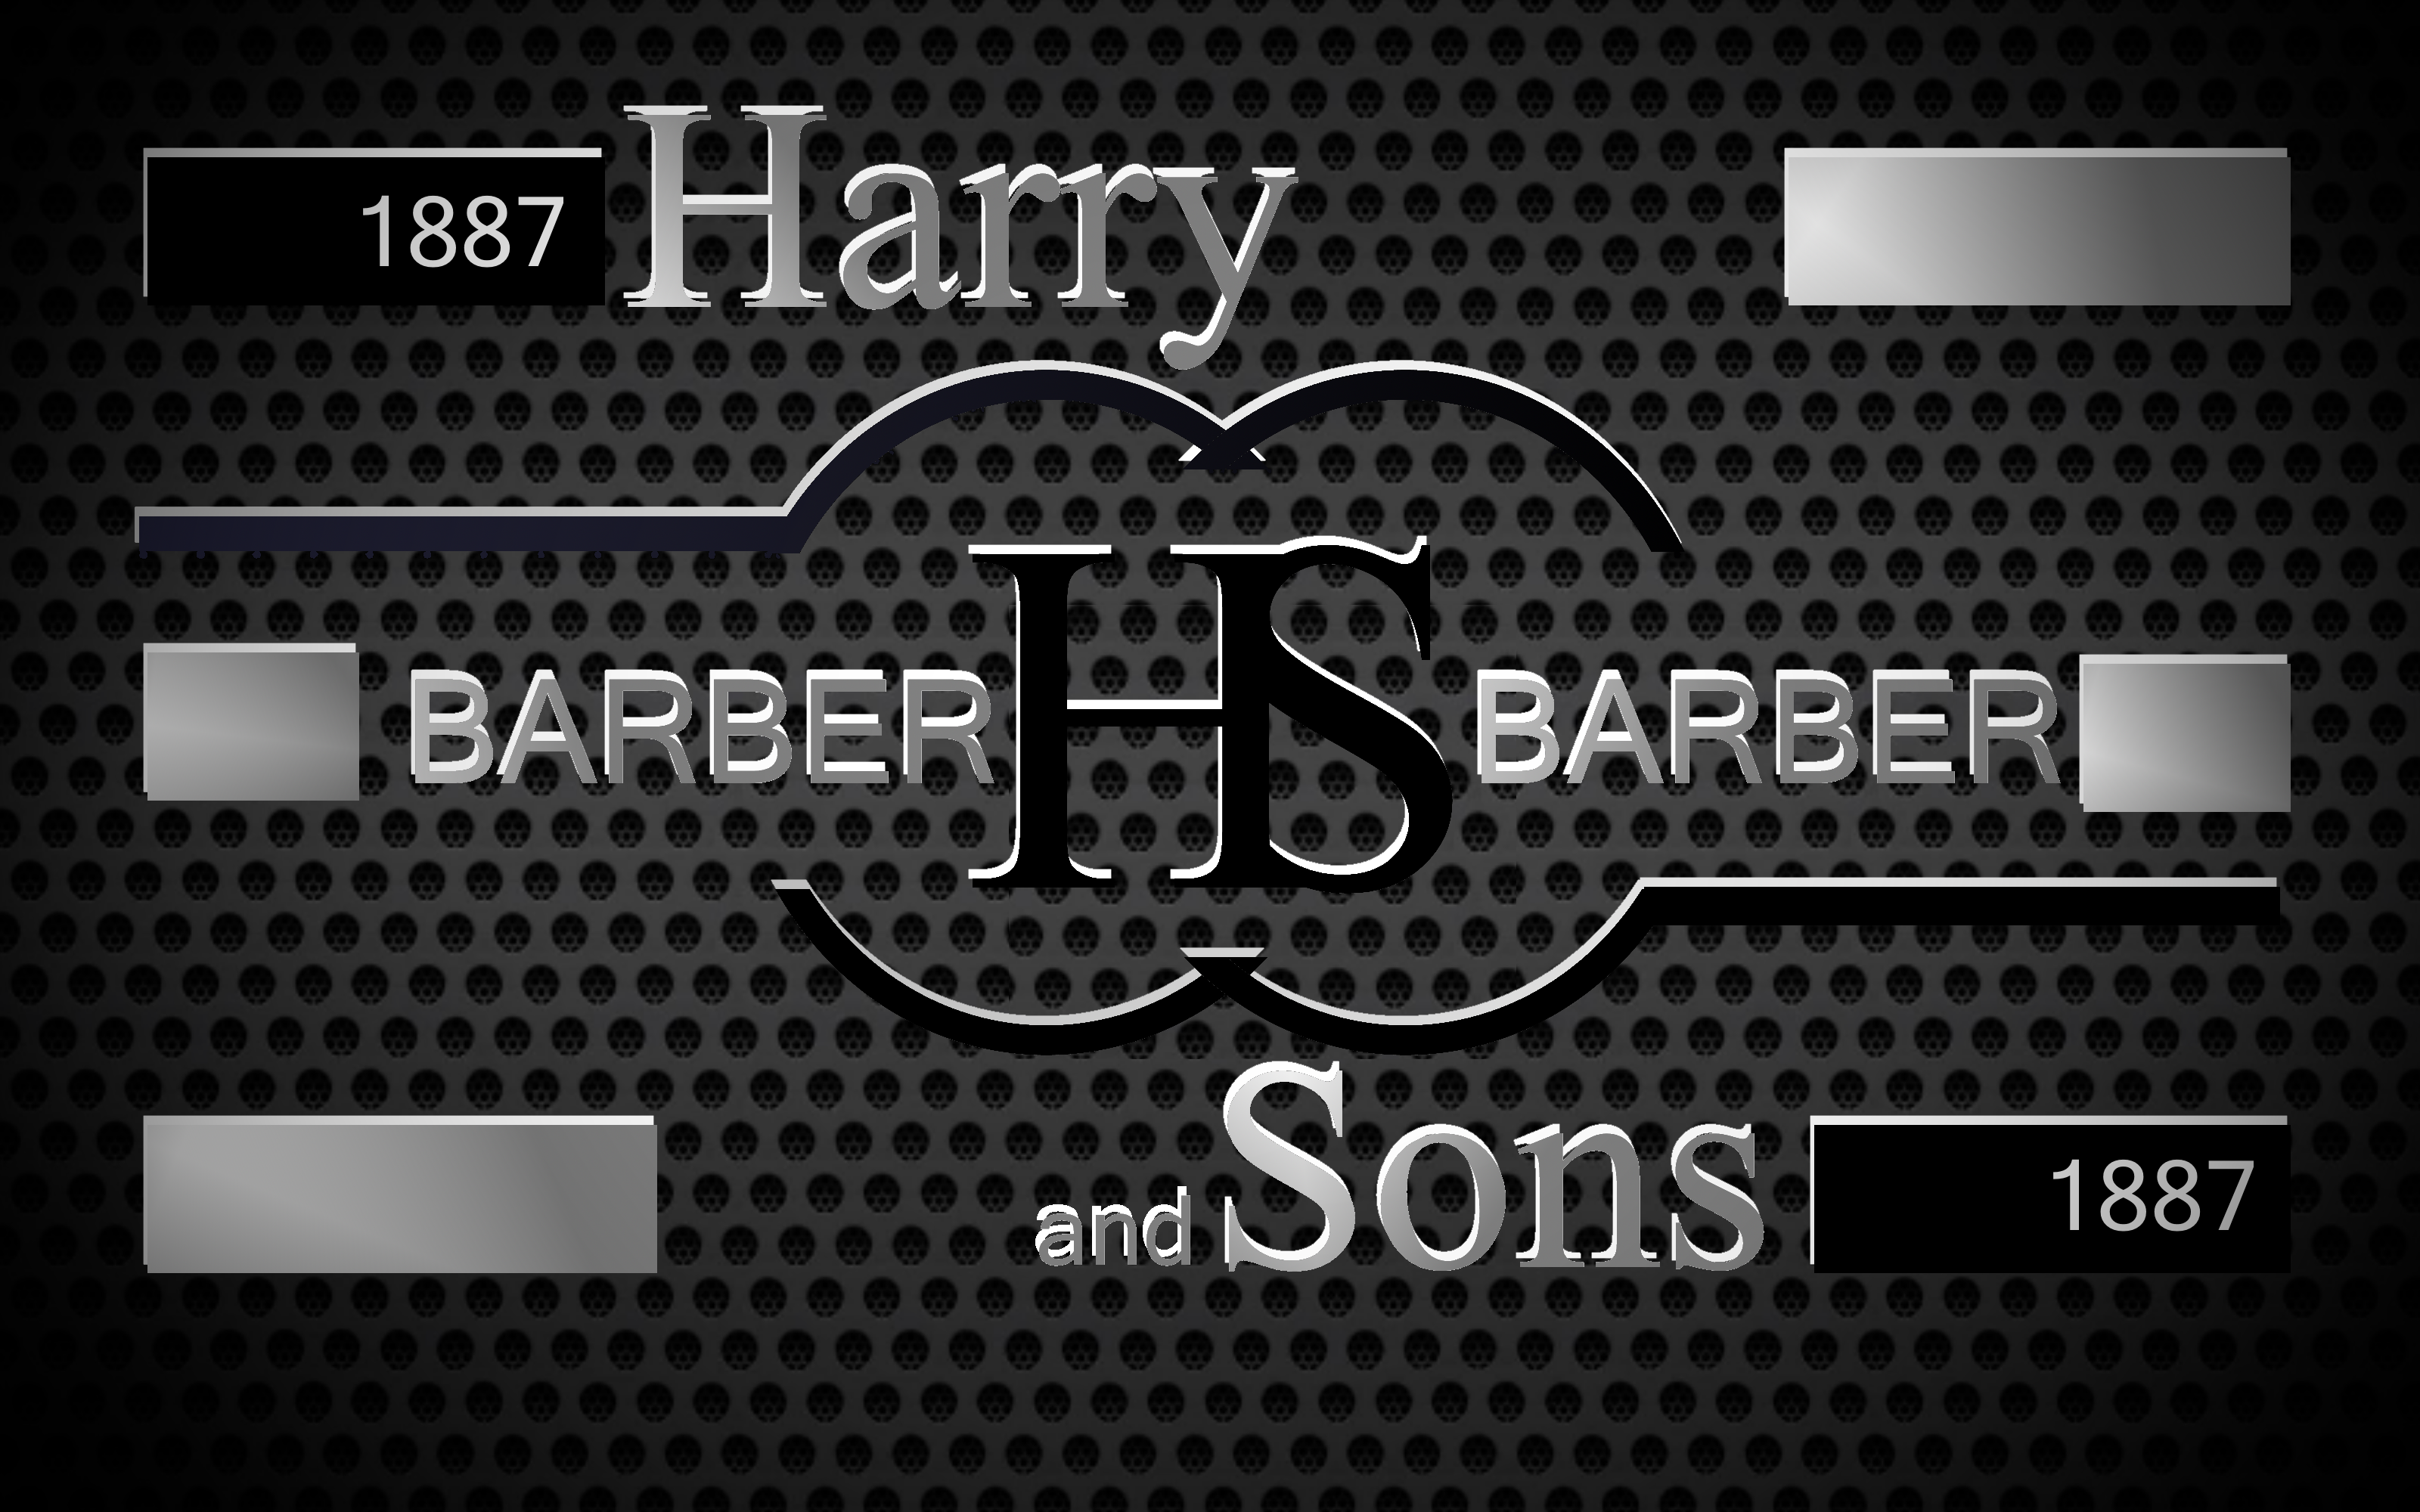 Logo Design by Roberto Bassi - Entry No. 178 in the Logo Design Contest Captivating Logo Design for Harry and Sons Barber.